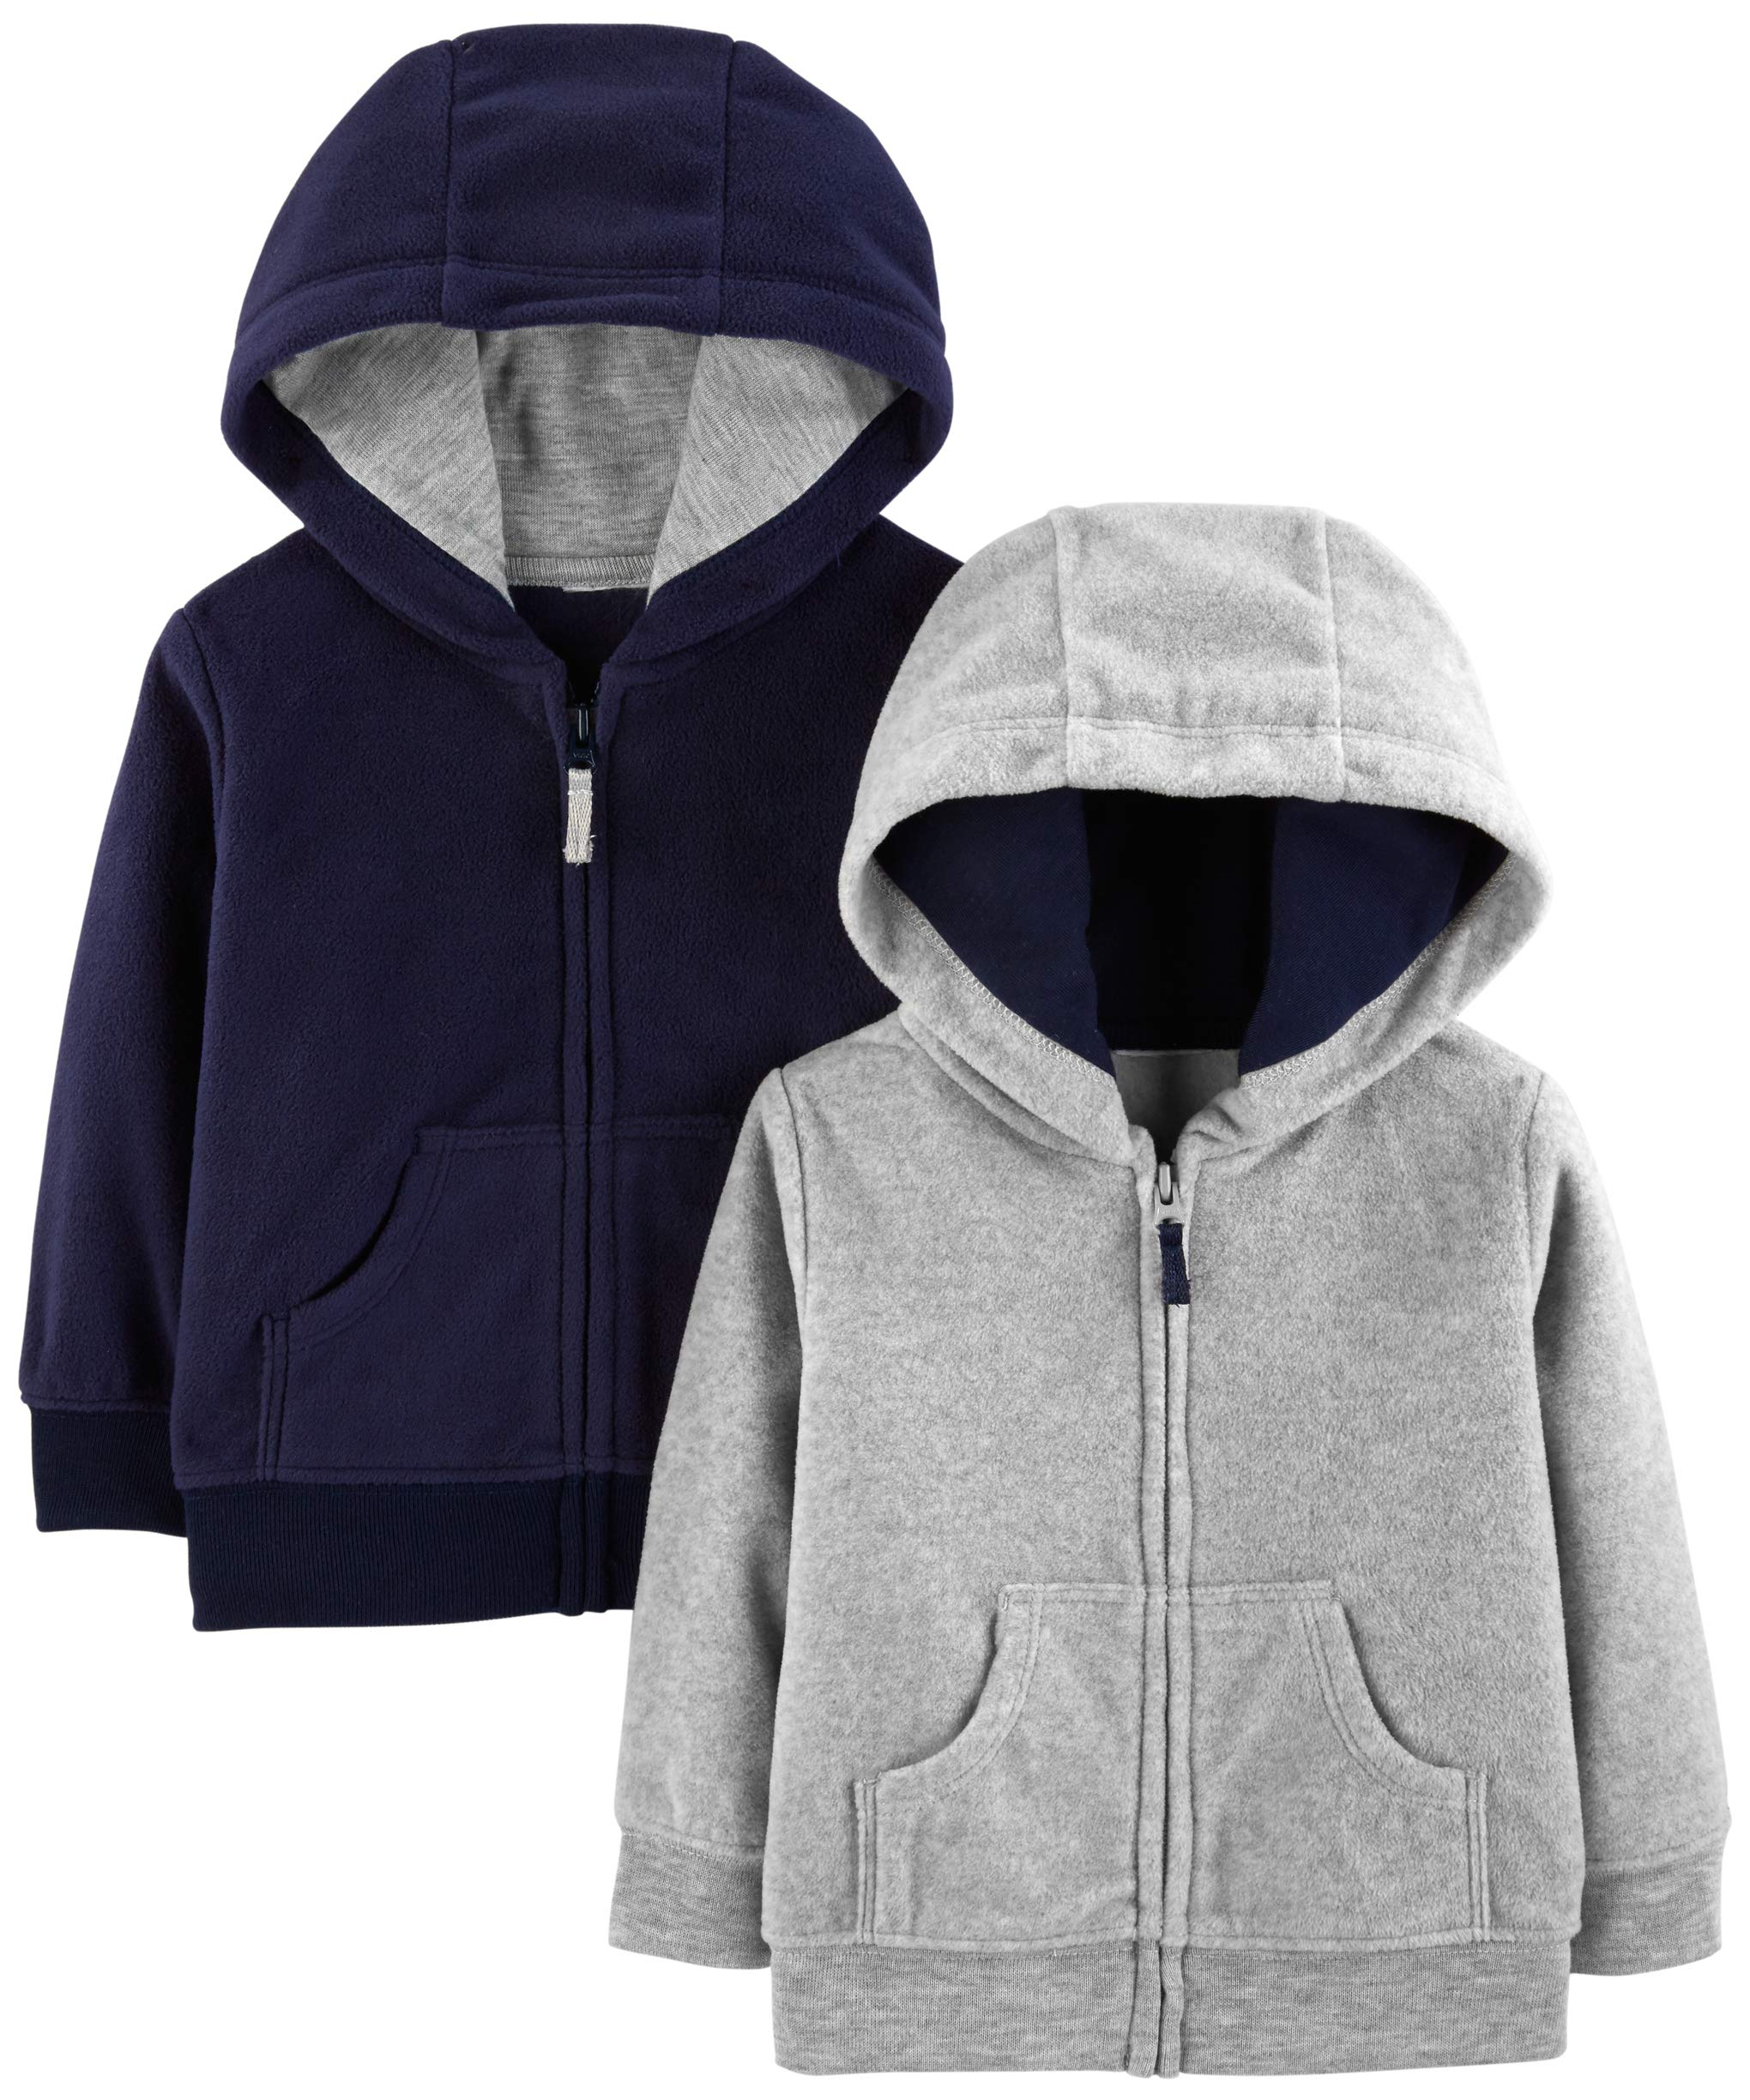 Simple Joys by Carter's Boys' 2-Pack Fleece Full Zip Hoodies, Gray/Navy, 18 Months by Simple Joys by Carter's